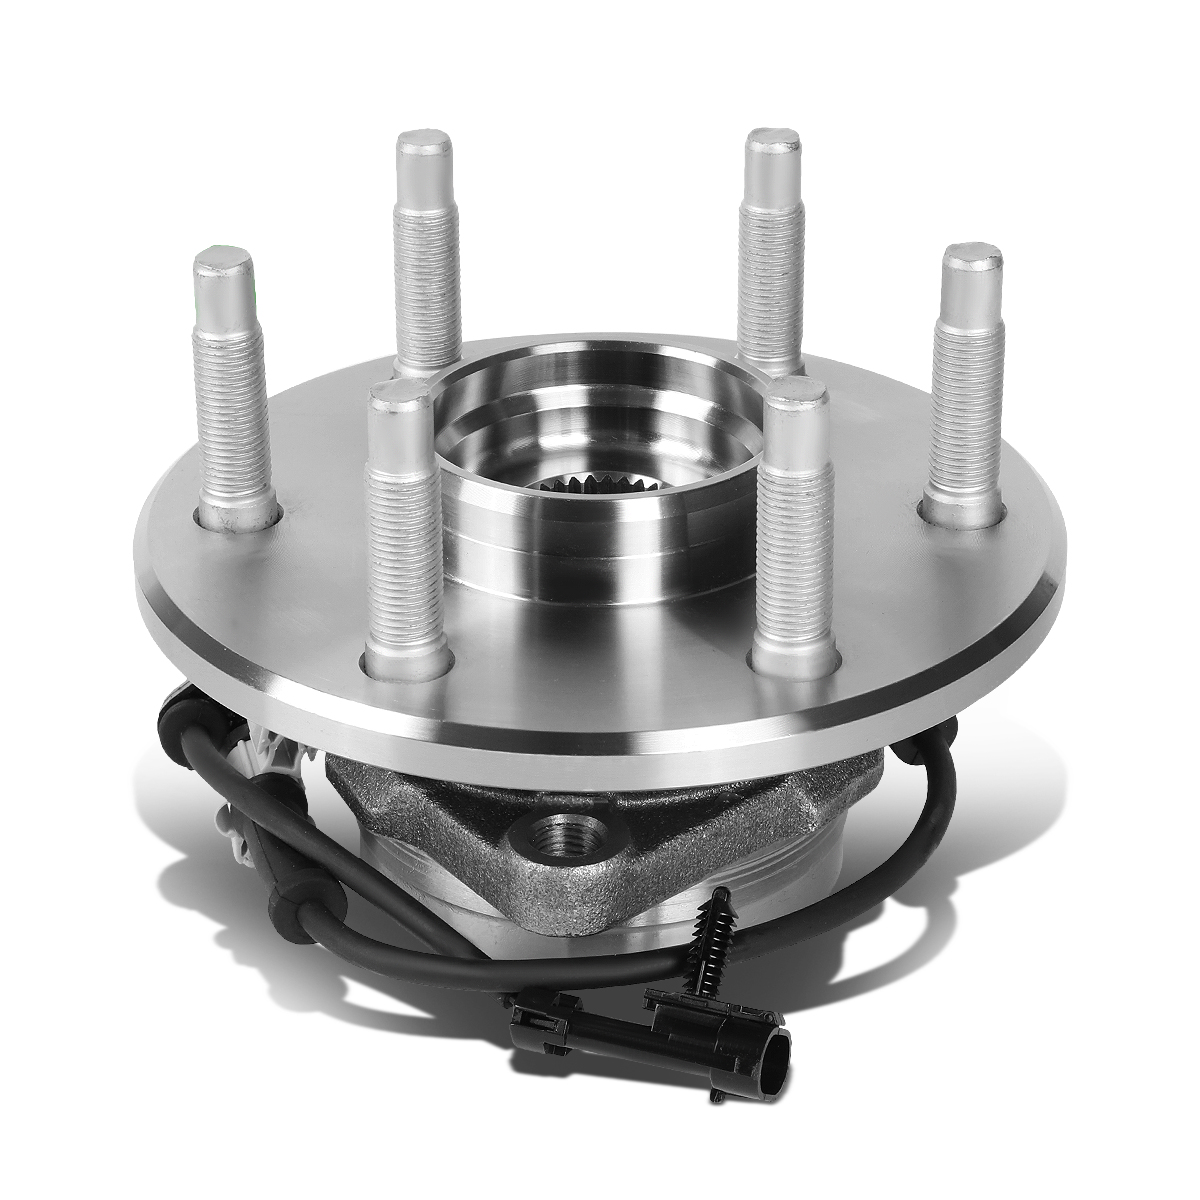 DNA Motoring OE-WHA-002 Semi-Polished Steel Wheel Bearing Hub Assembly 515036 For 02-06 Cadillac Chevy GMC